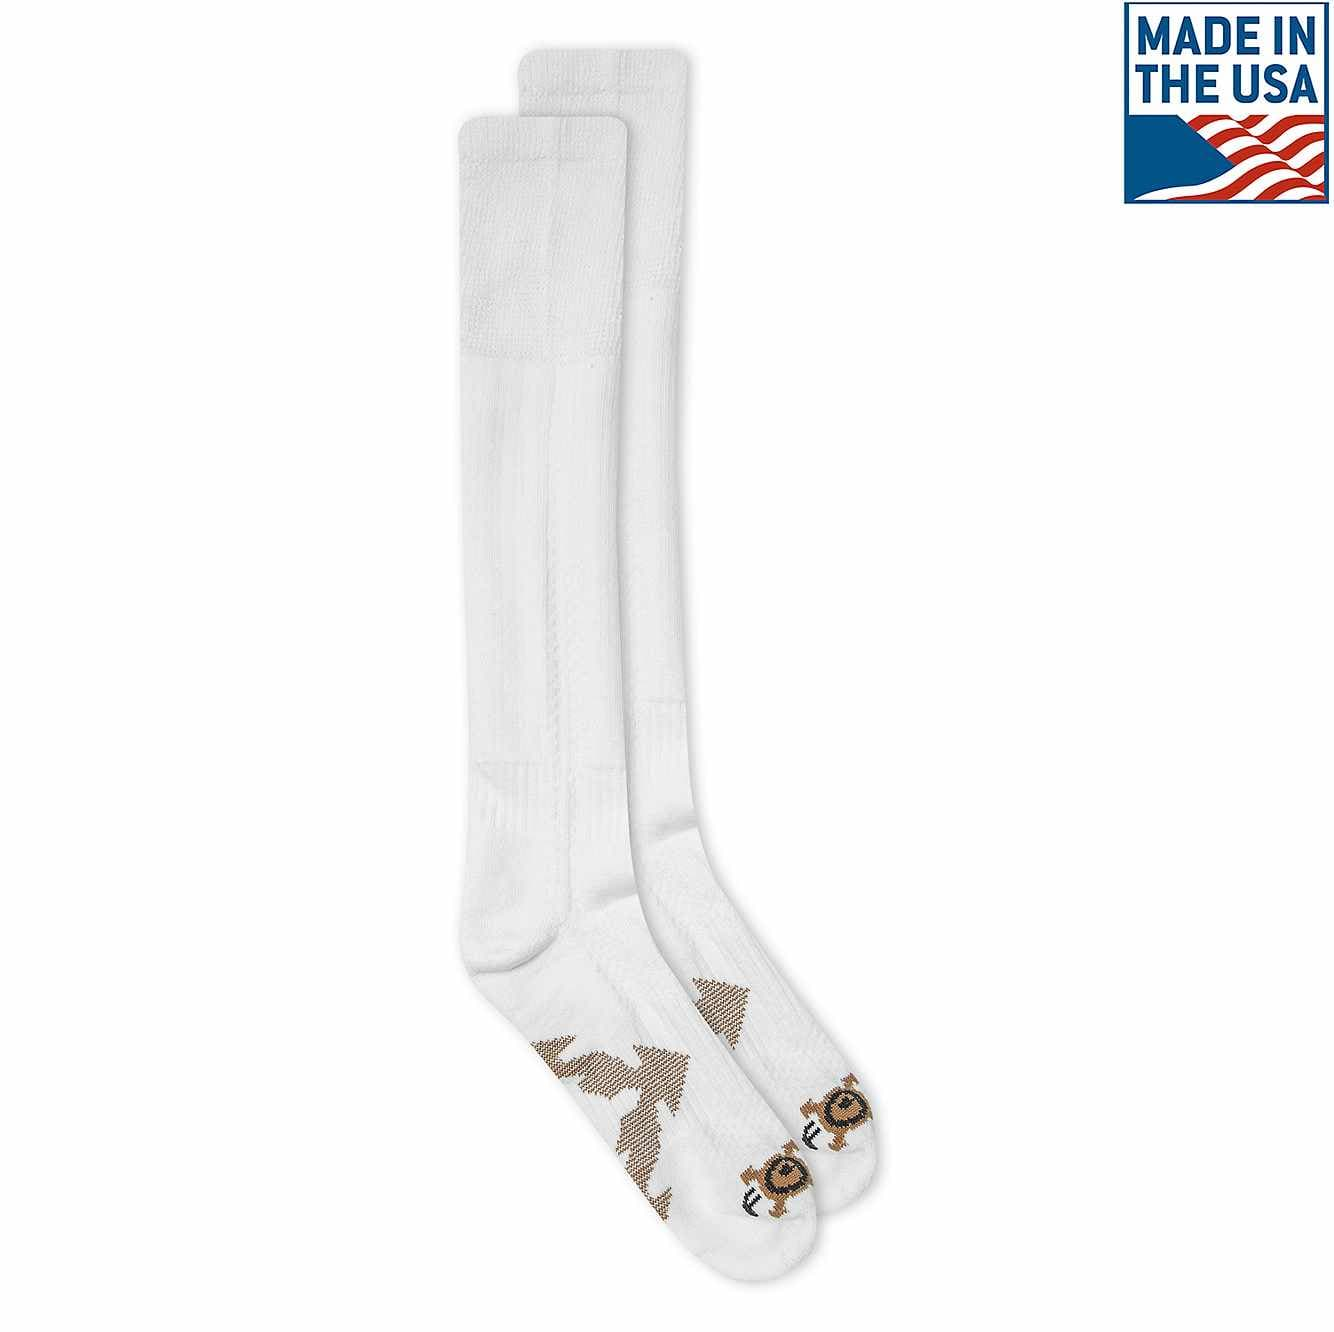 Picture of Force® Over-the-Calf Sock in White